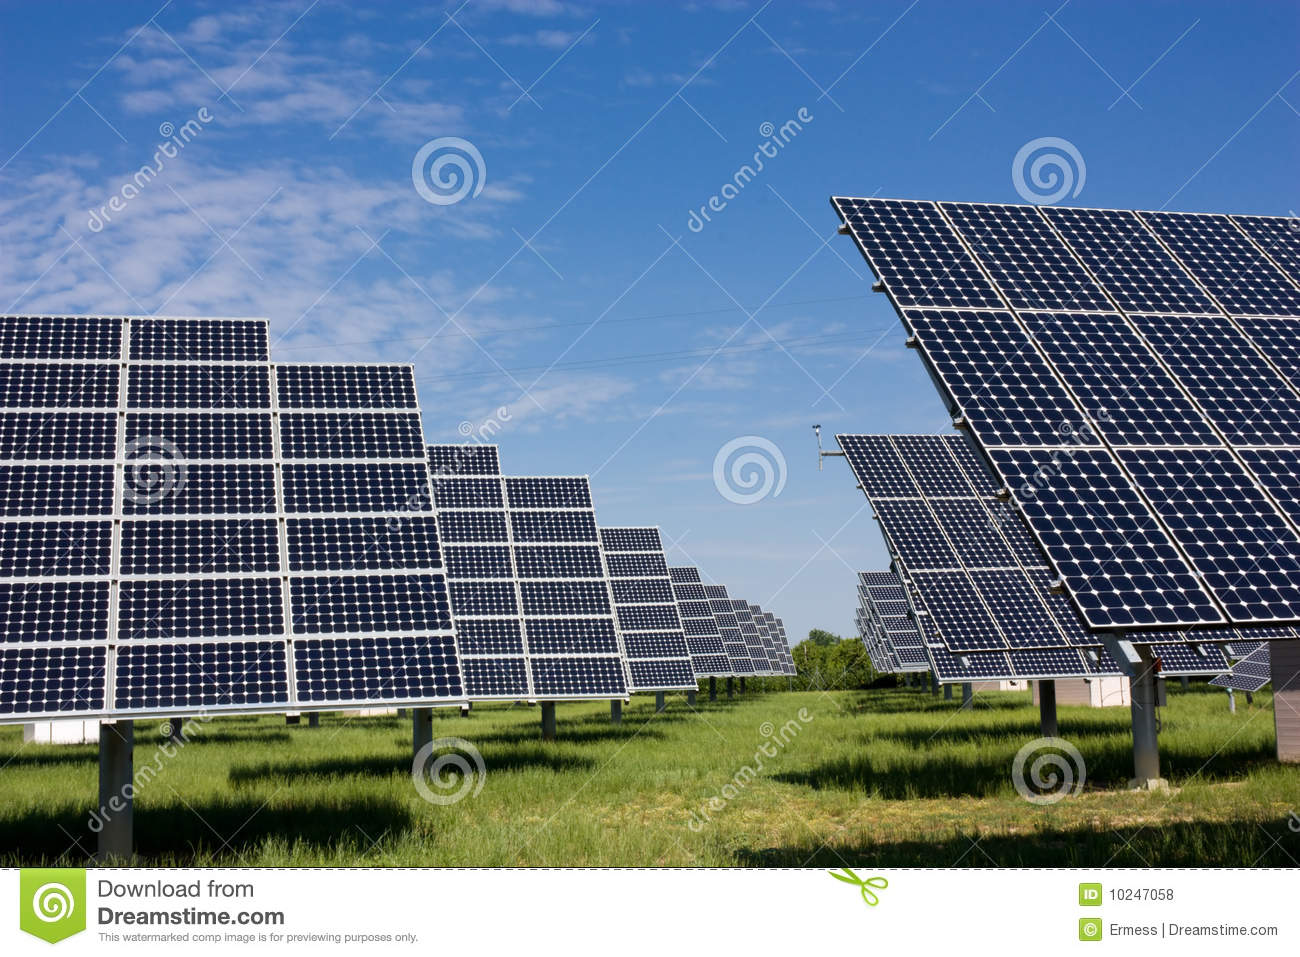 List of solar thermal power stations